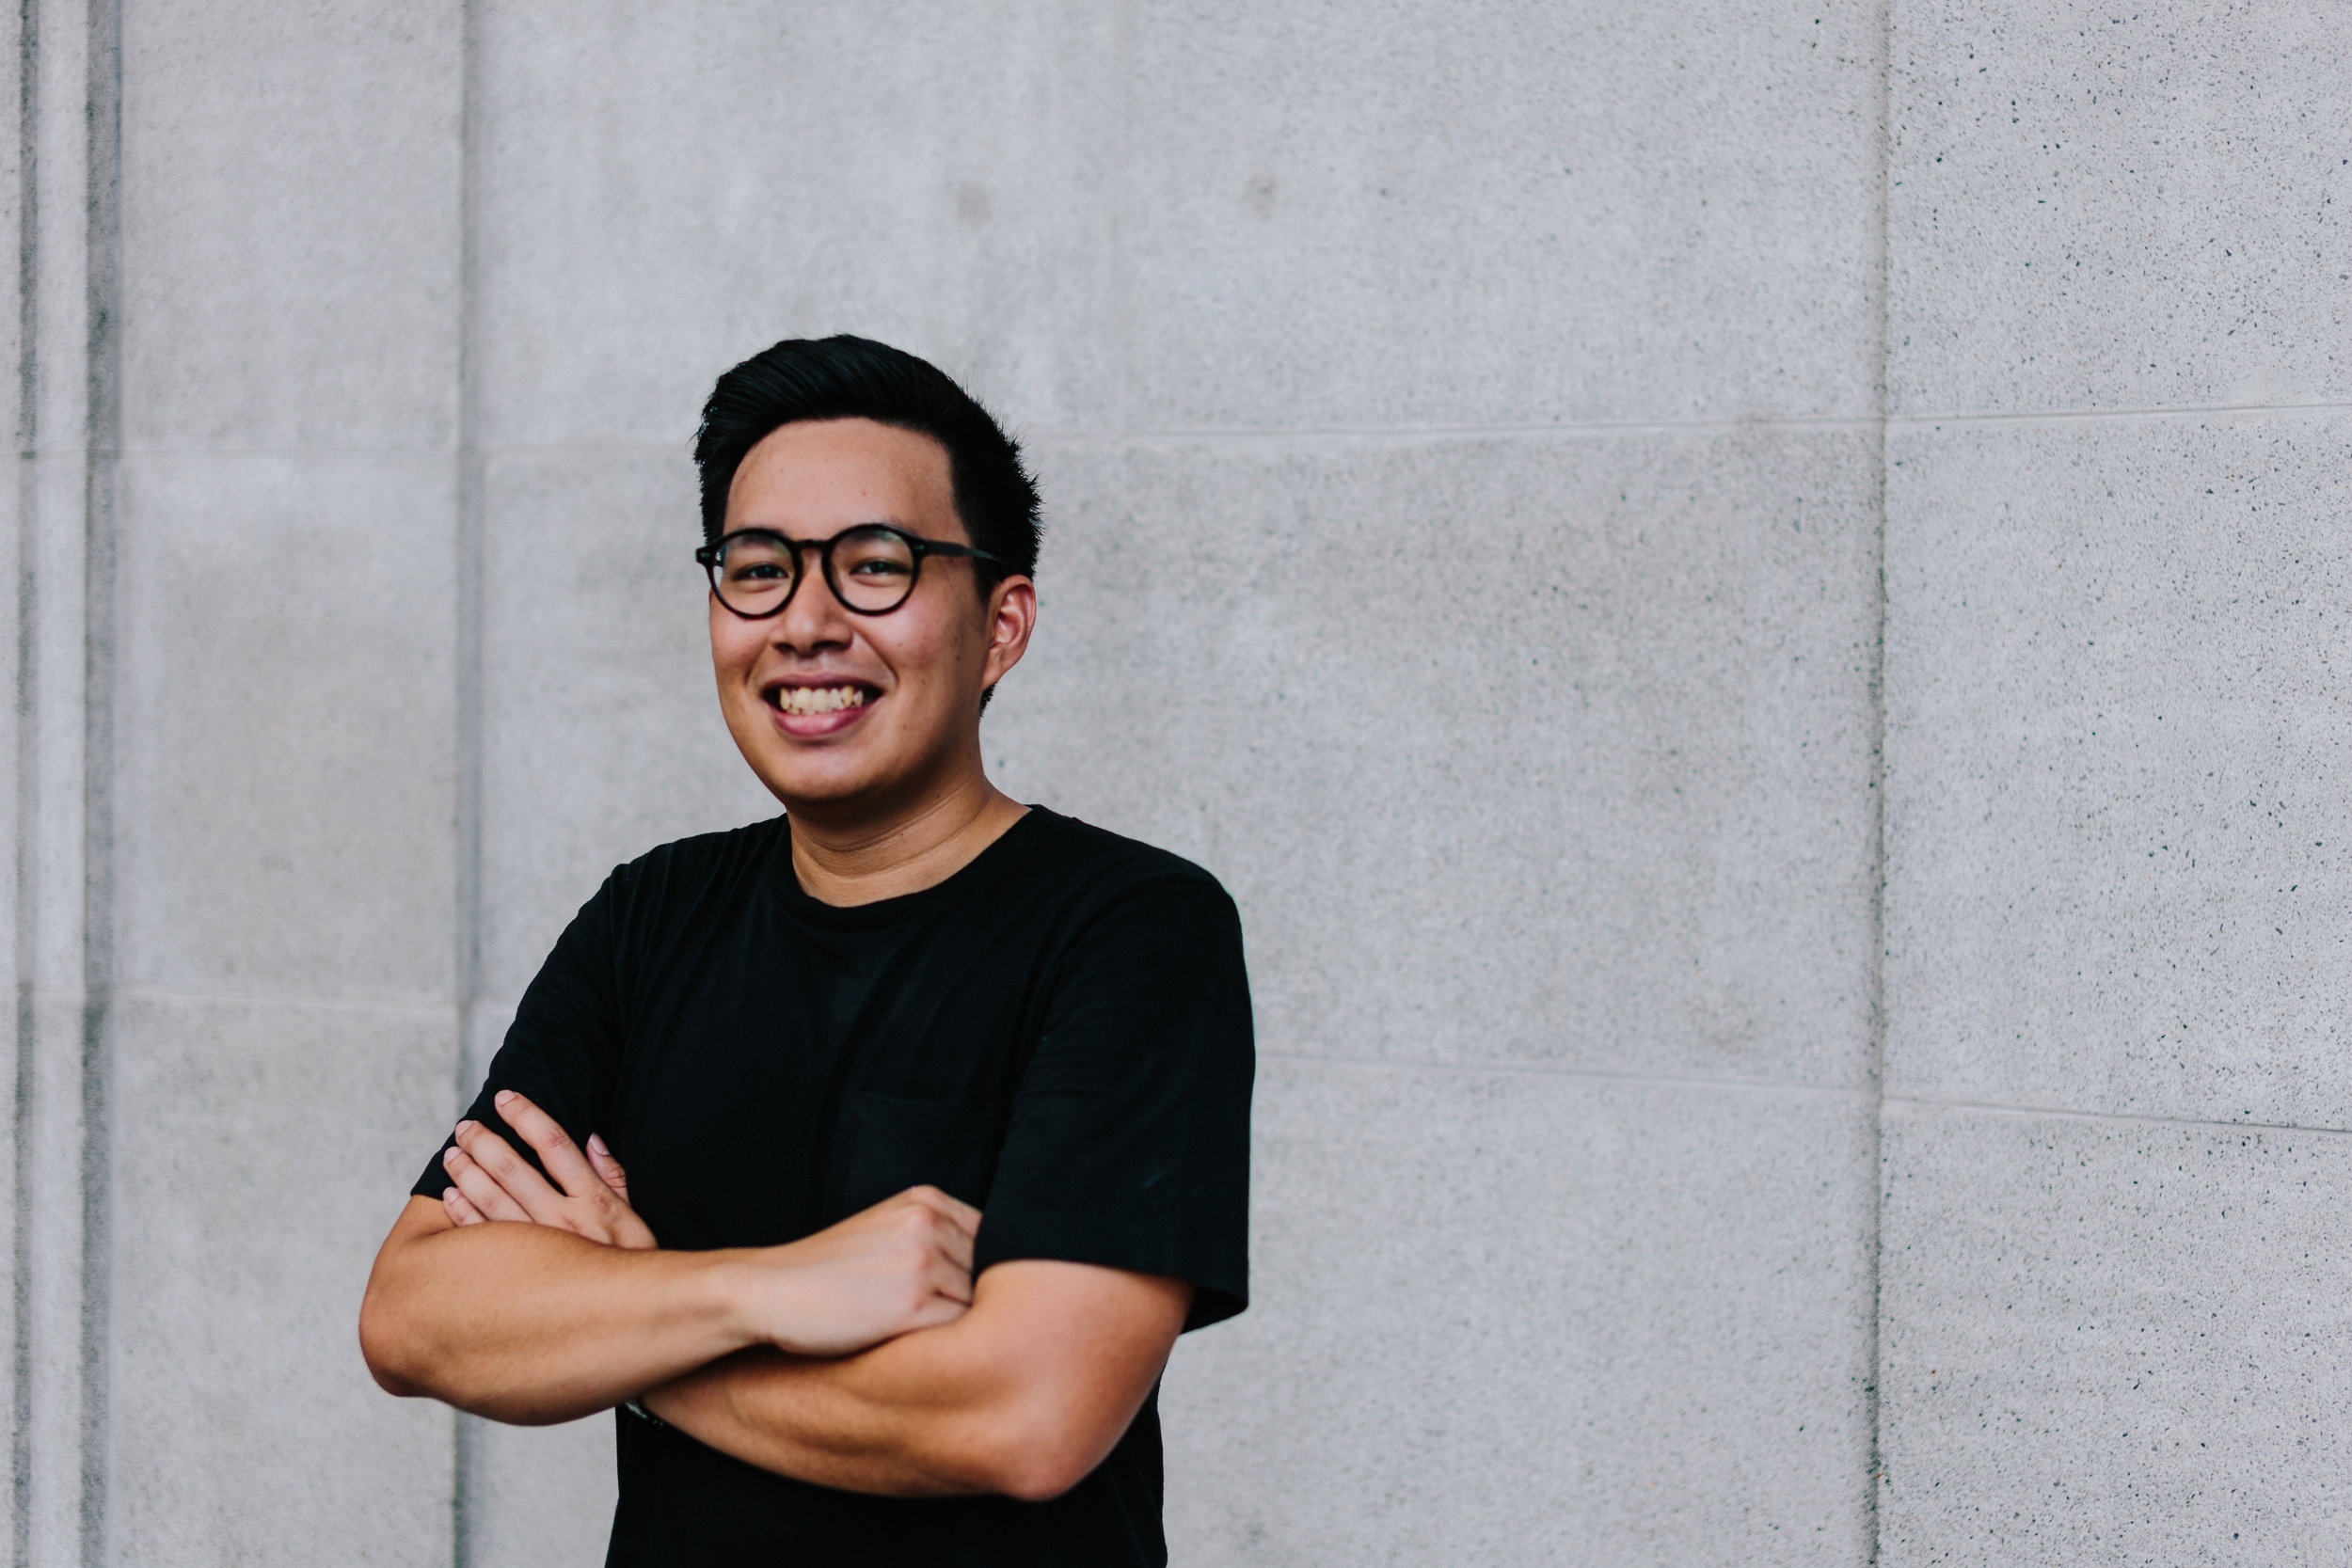 JEFFREY TAN - BRANDING MANAGER | CONTENT CREATORJeffREY is a Professional Photographer by training. His study was in Systems Engineering. He likes reading non-fictioN AND BELONGS TO THE OLDHAM BREAKFAST CYCLING CLUB.